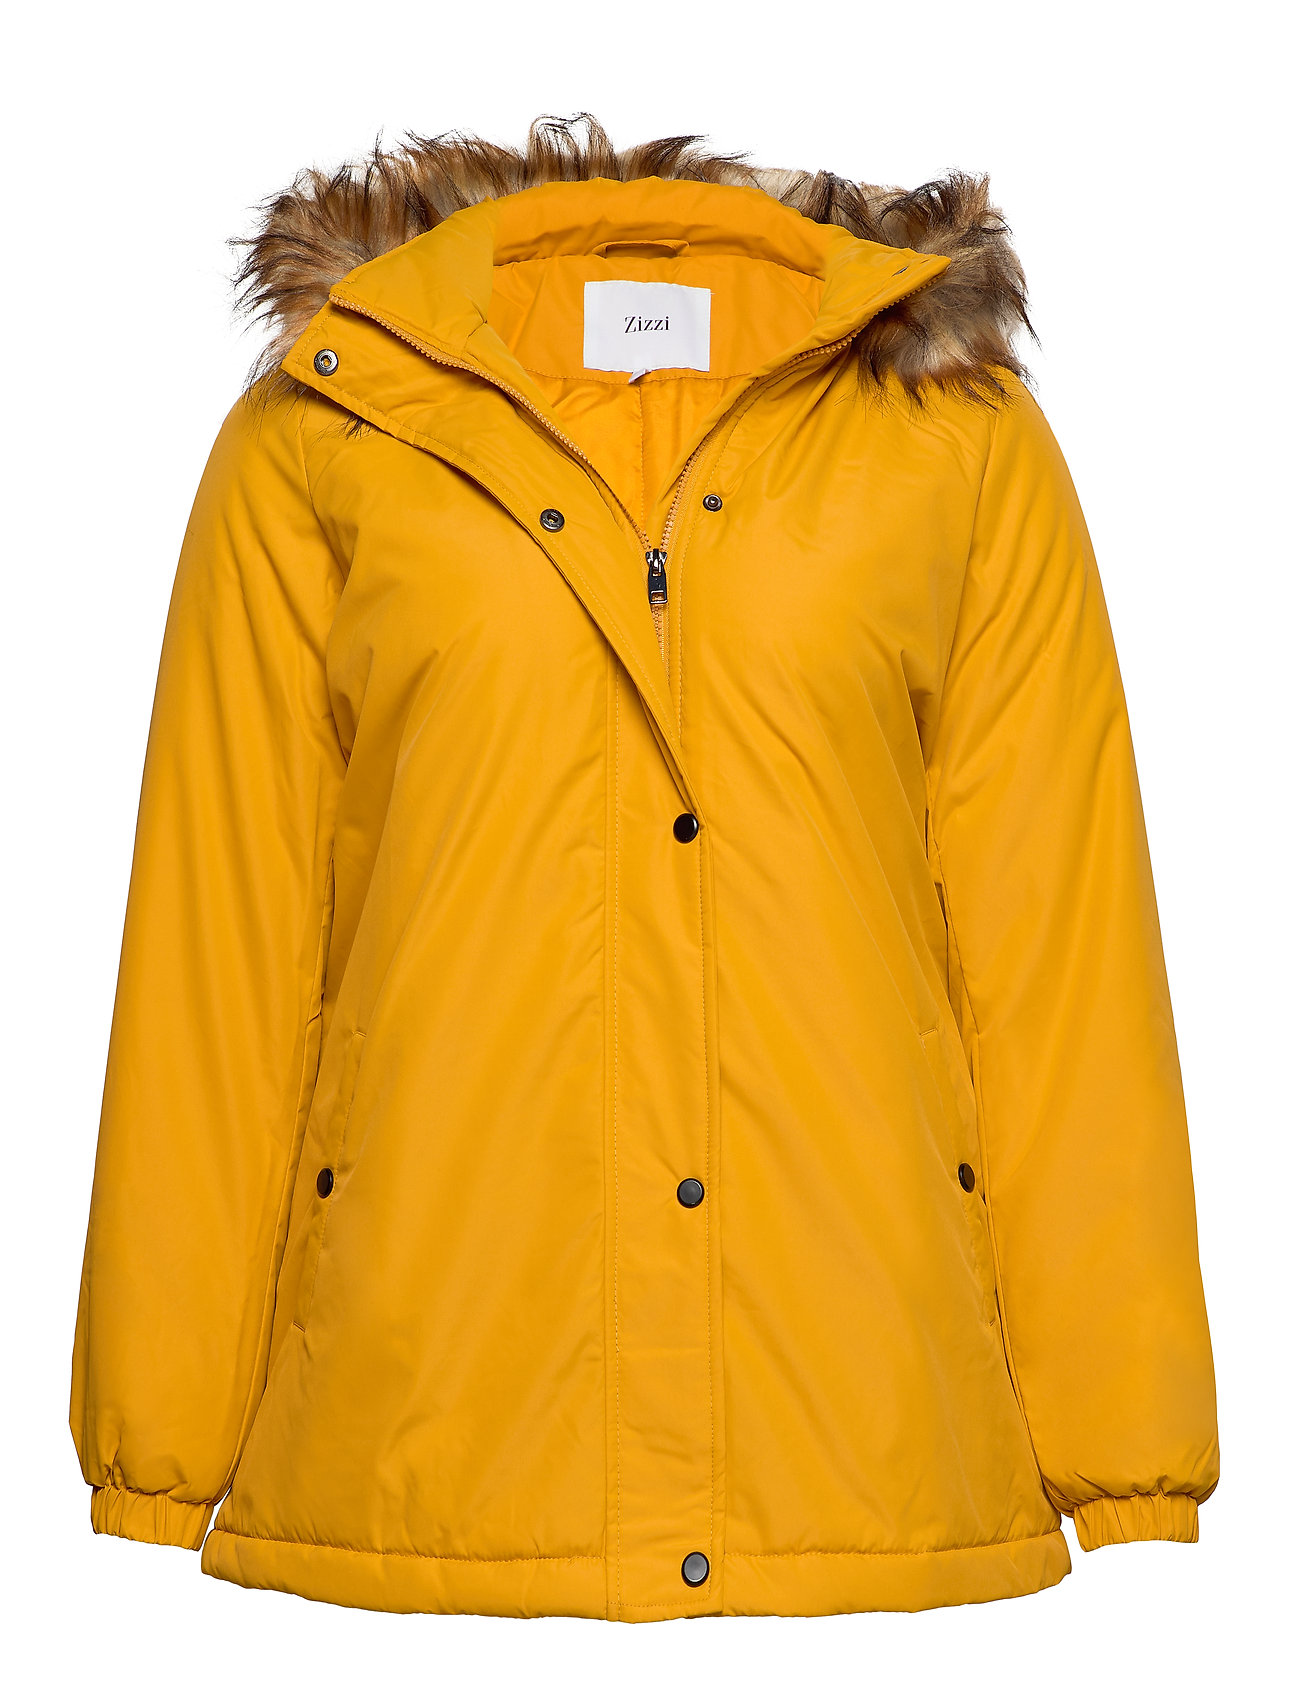 Zizzi MANNA, L/S, COAT - YELLOW